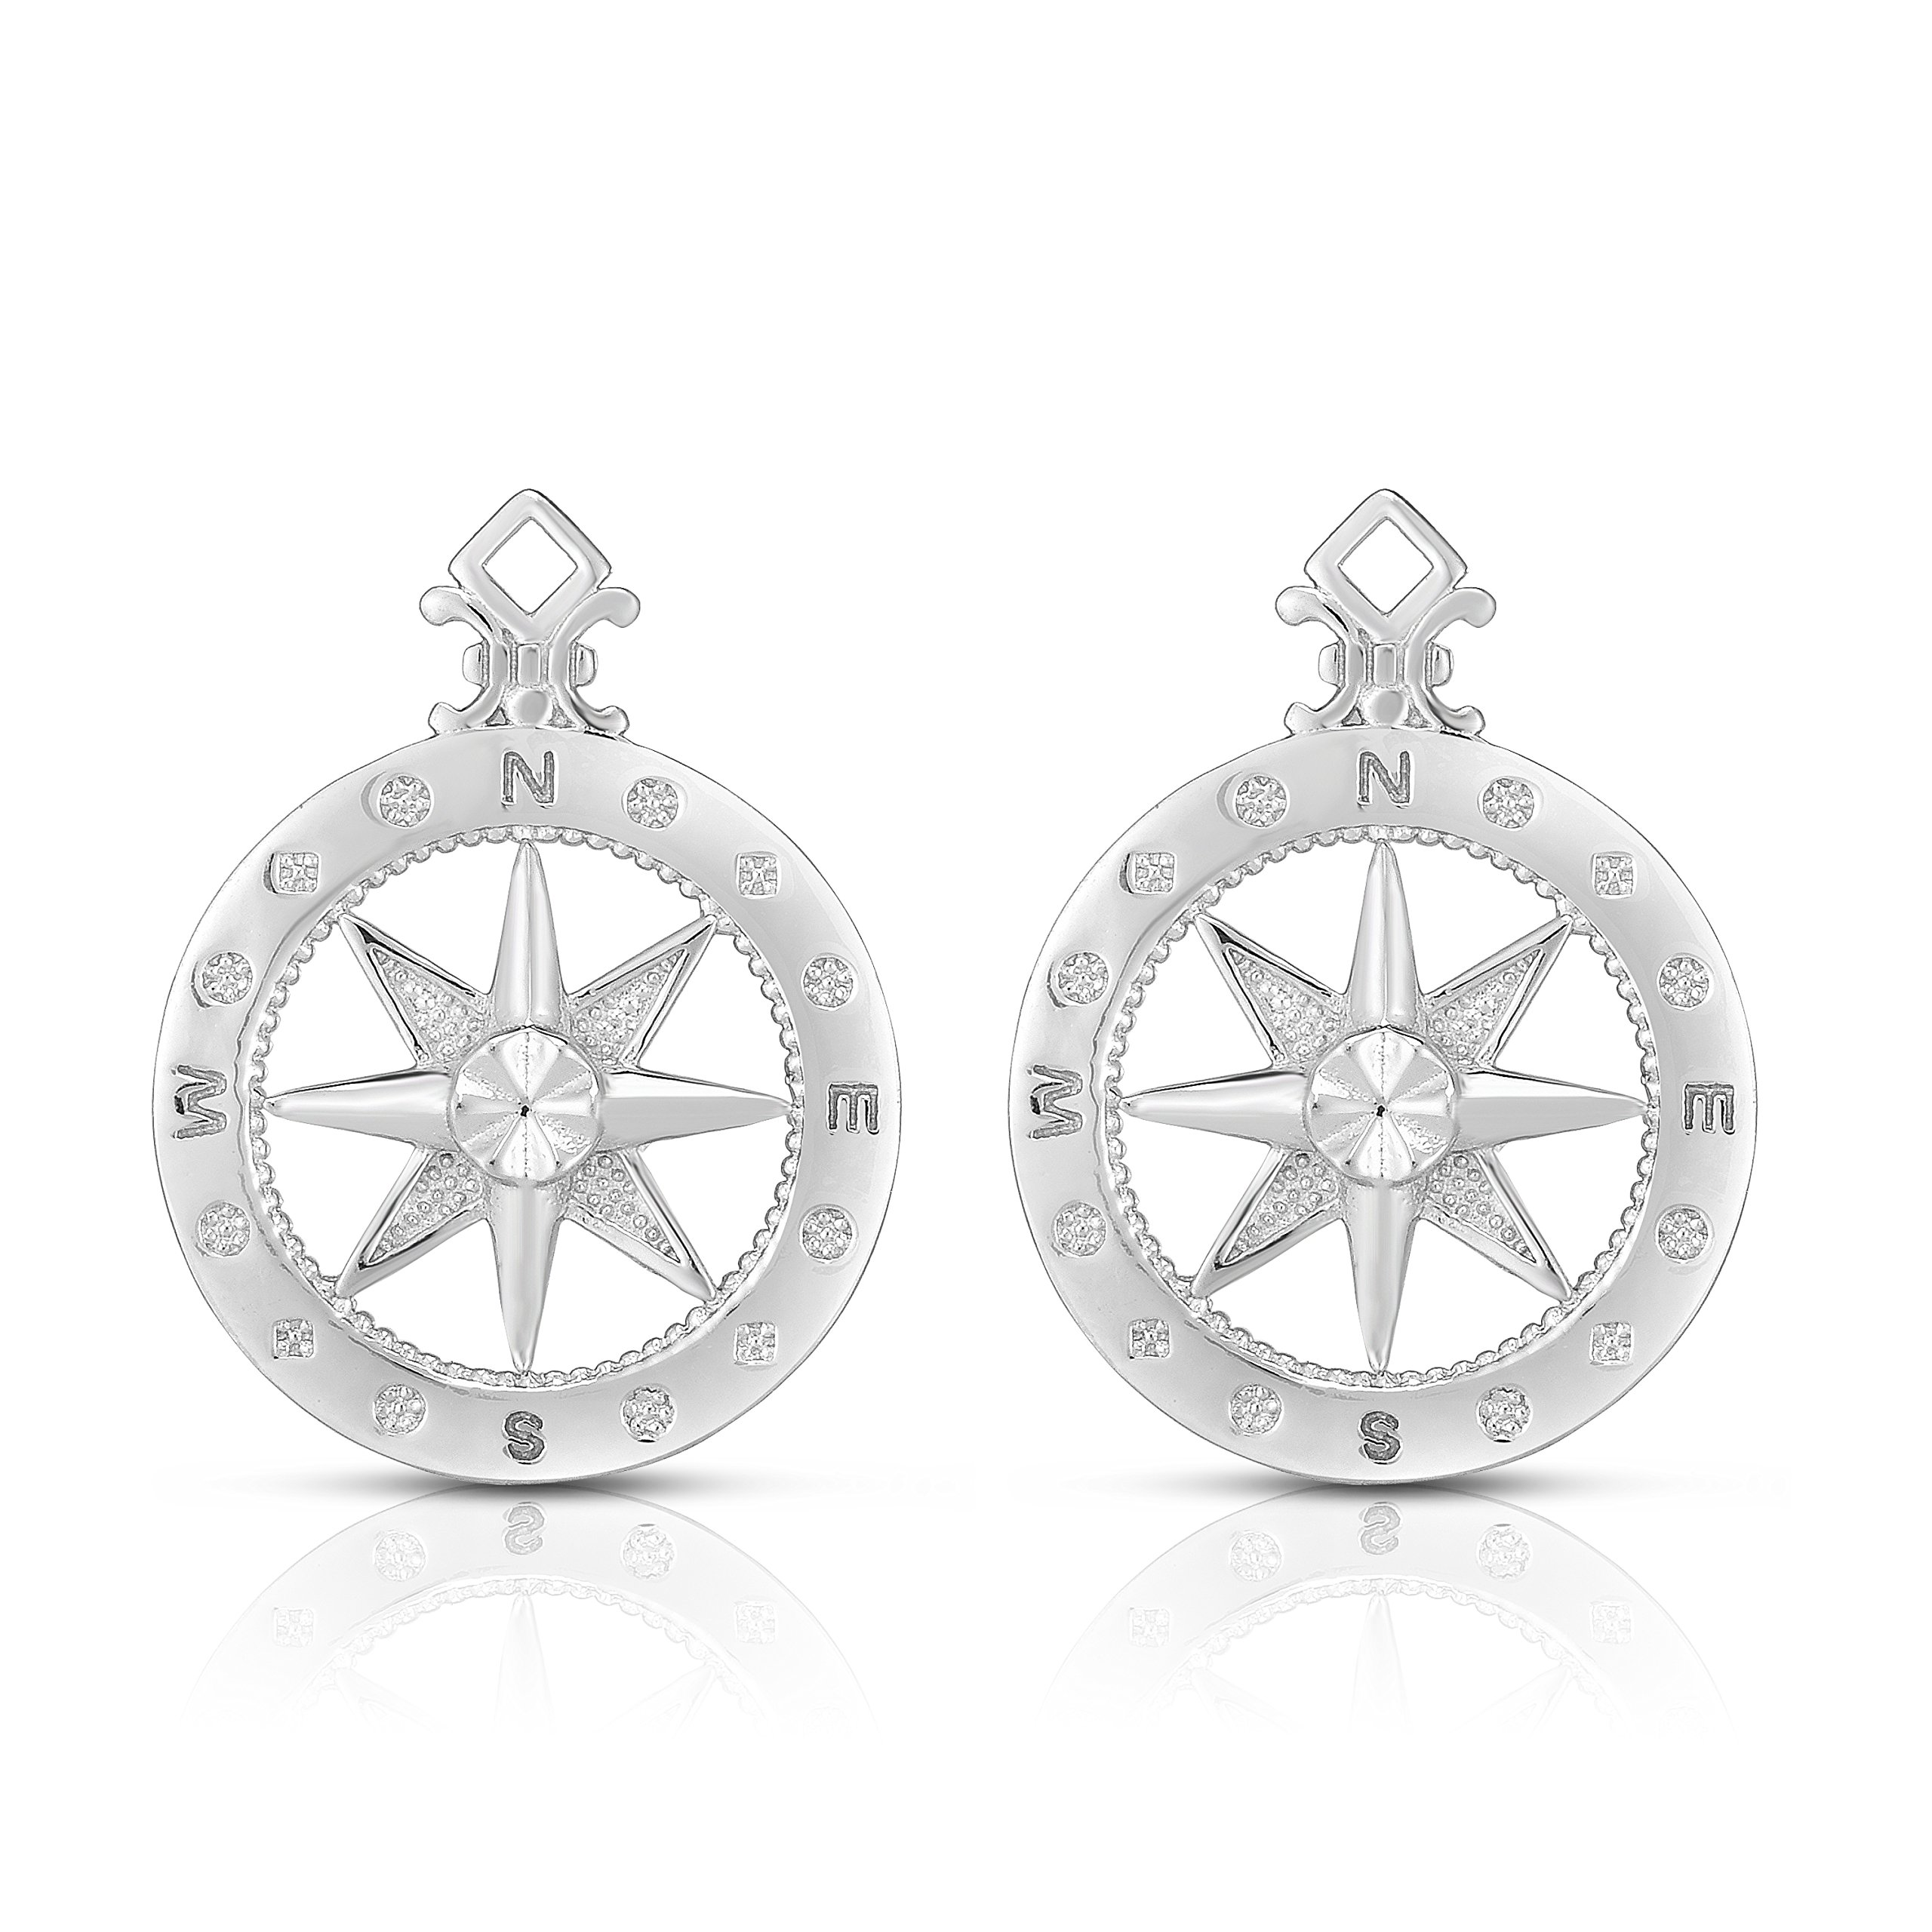 925 Sterling Silver Elegant Compass-Rose Post Earrings. (Natural Silver)